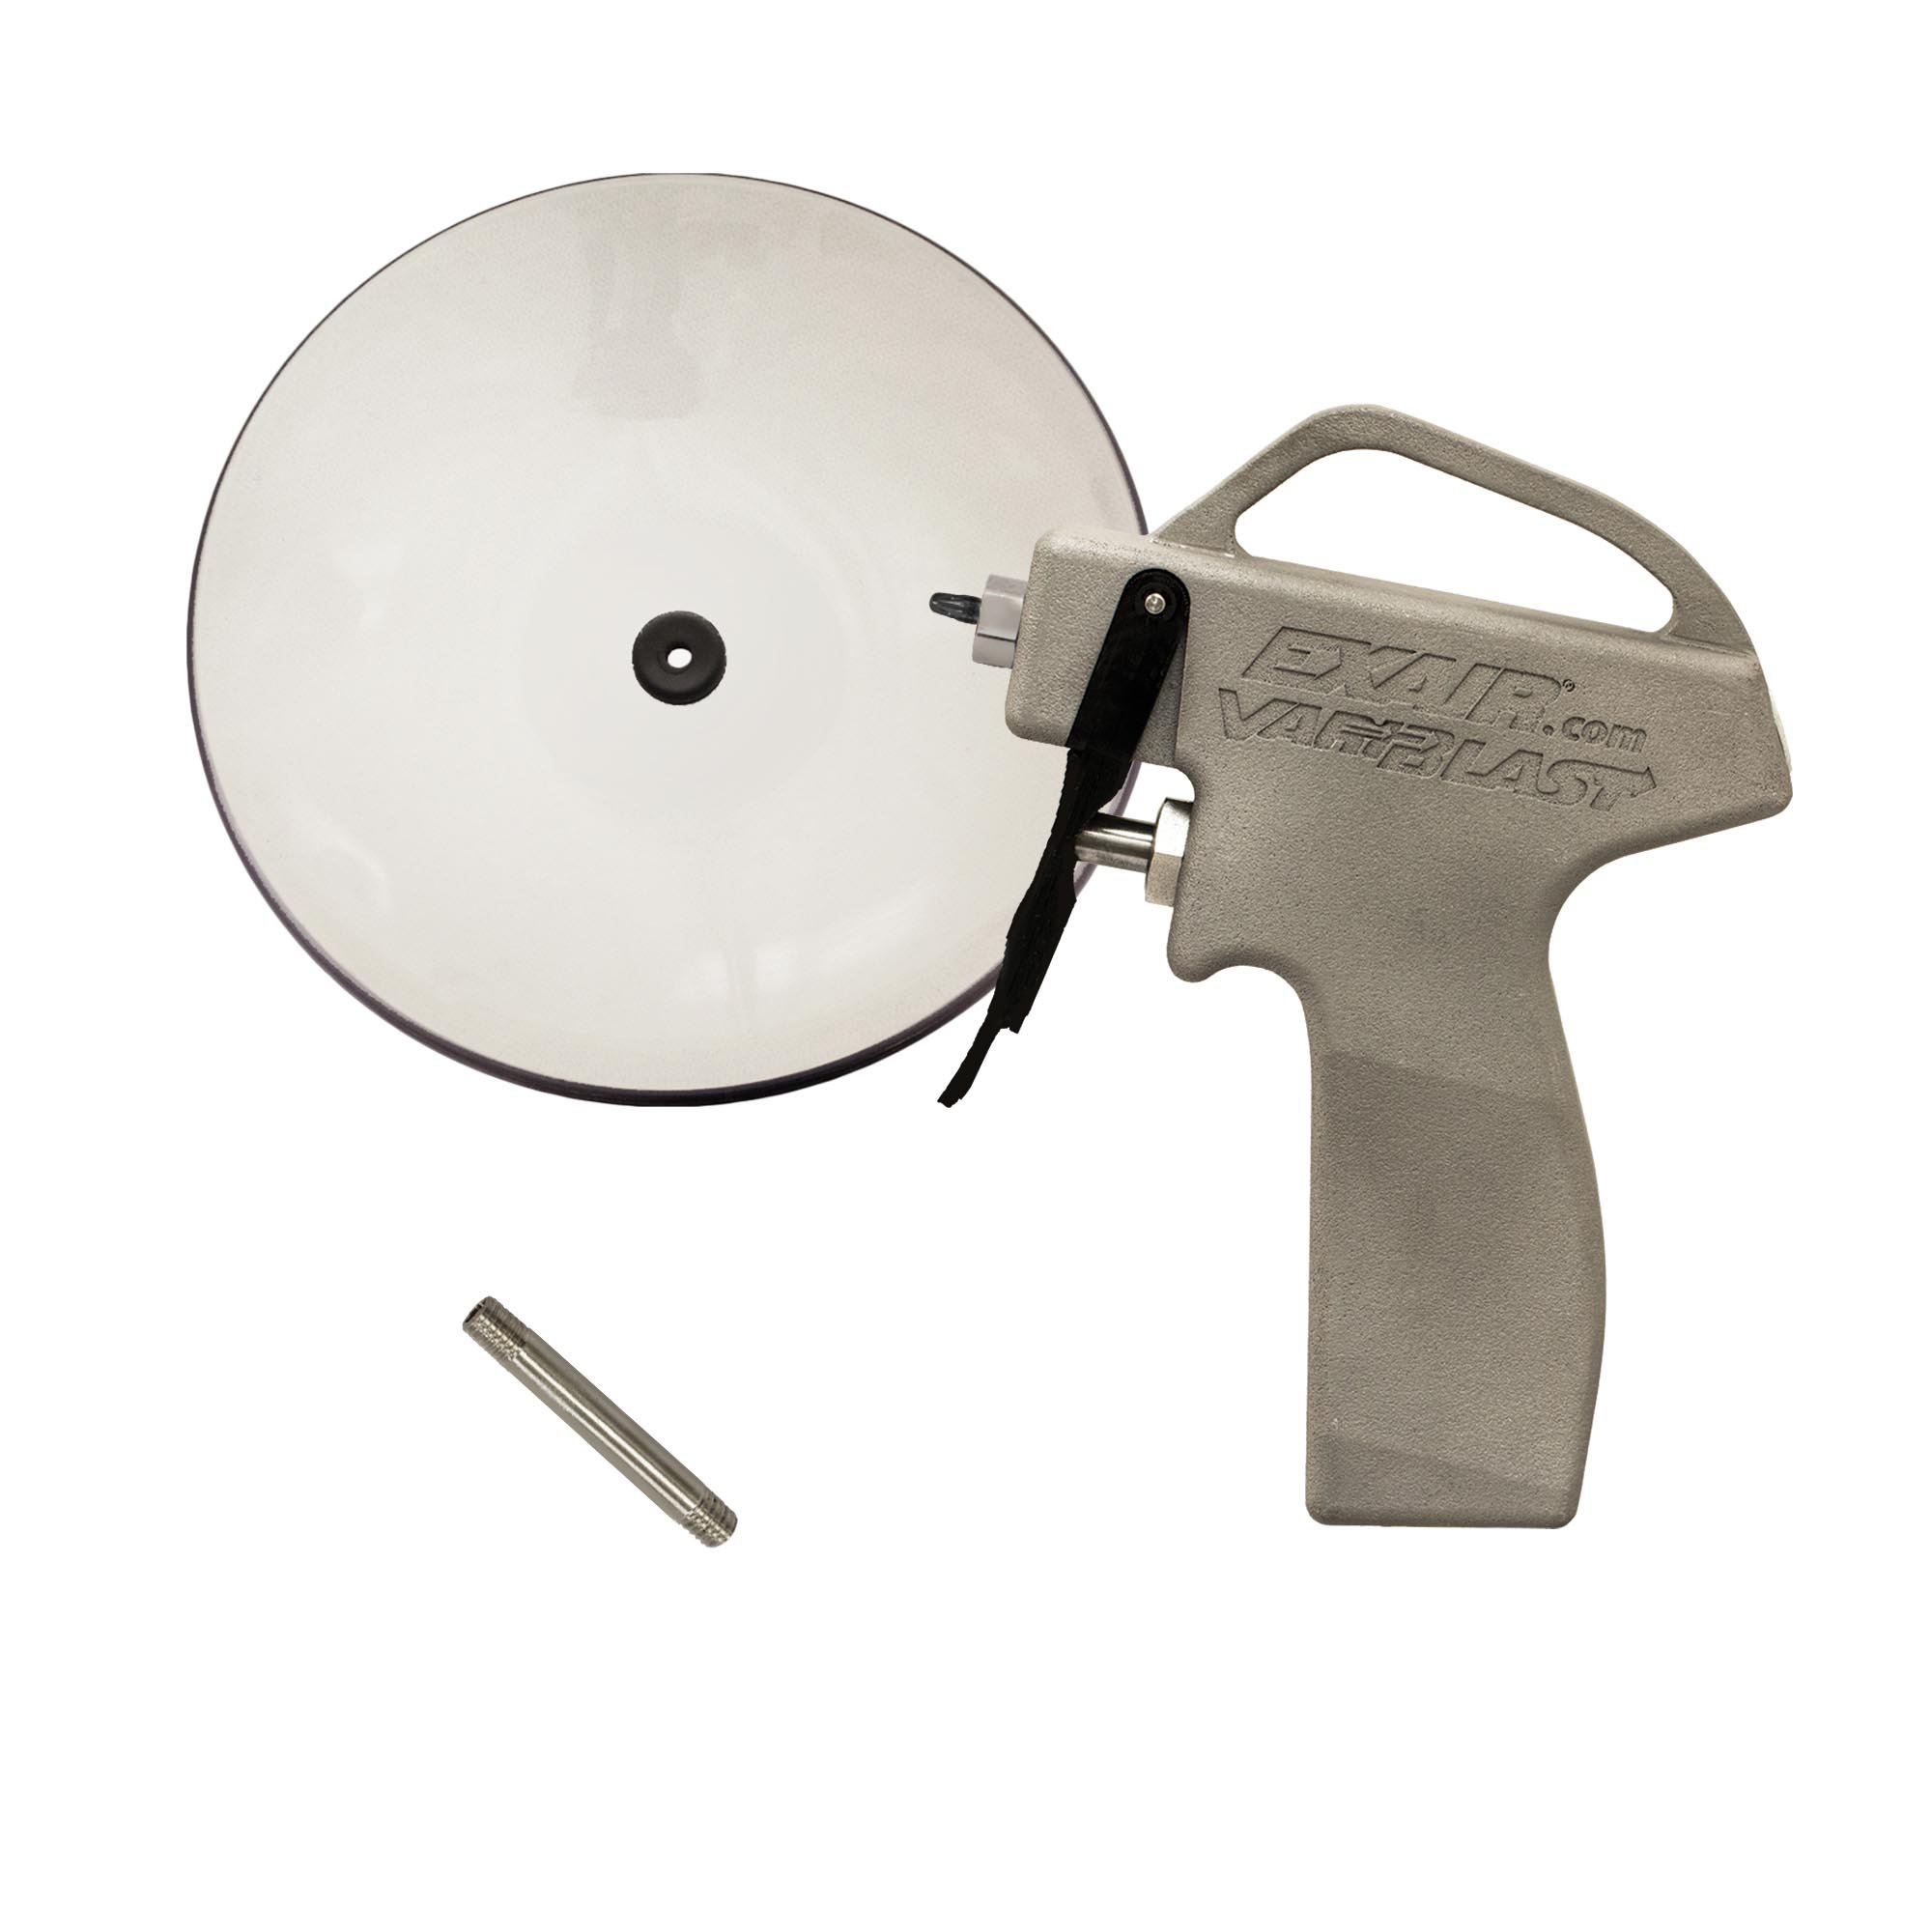 "VariBlast Compact Safety Air Gun with 6"" Extension Pipe and Chip Shield"